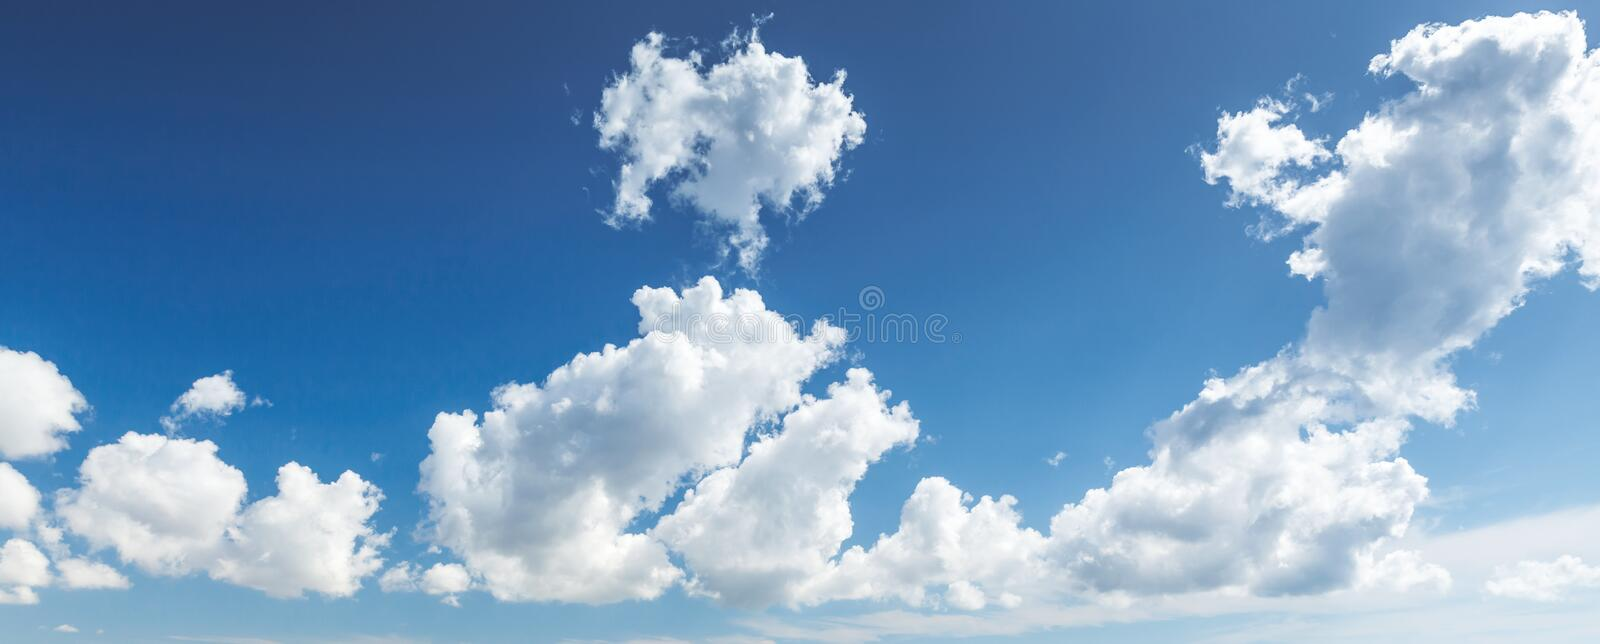 Natural blue cloudy sky panoramic background stock photo image of download natural blue cloudy sky panoramic background stock photo image of atmosphere clear voltagebd Images